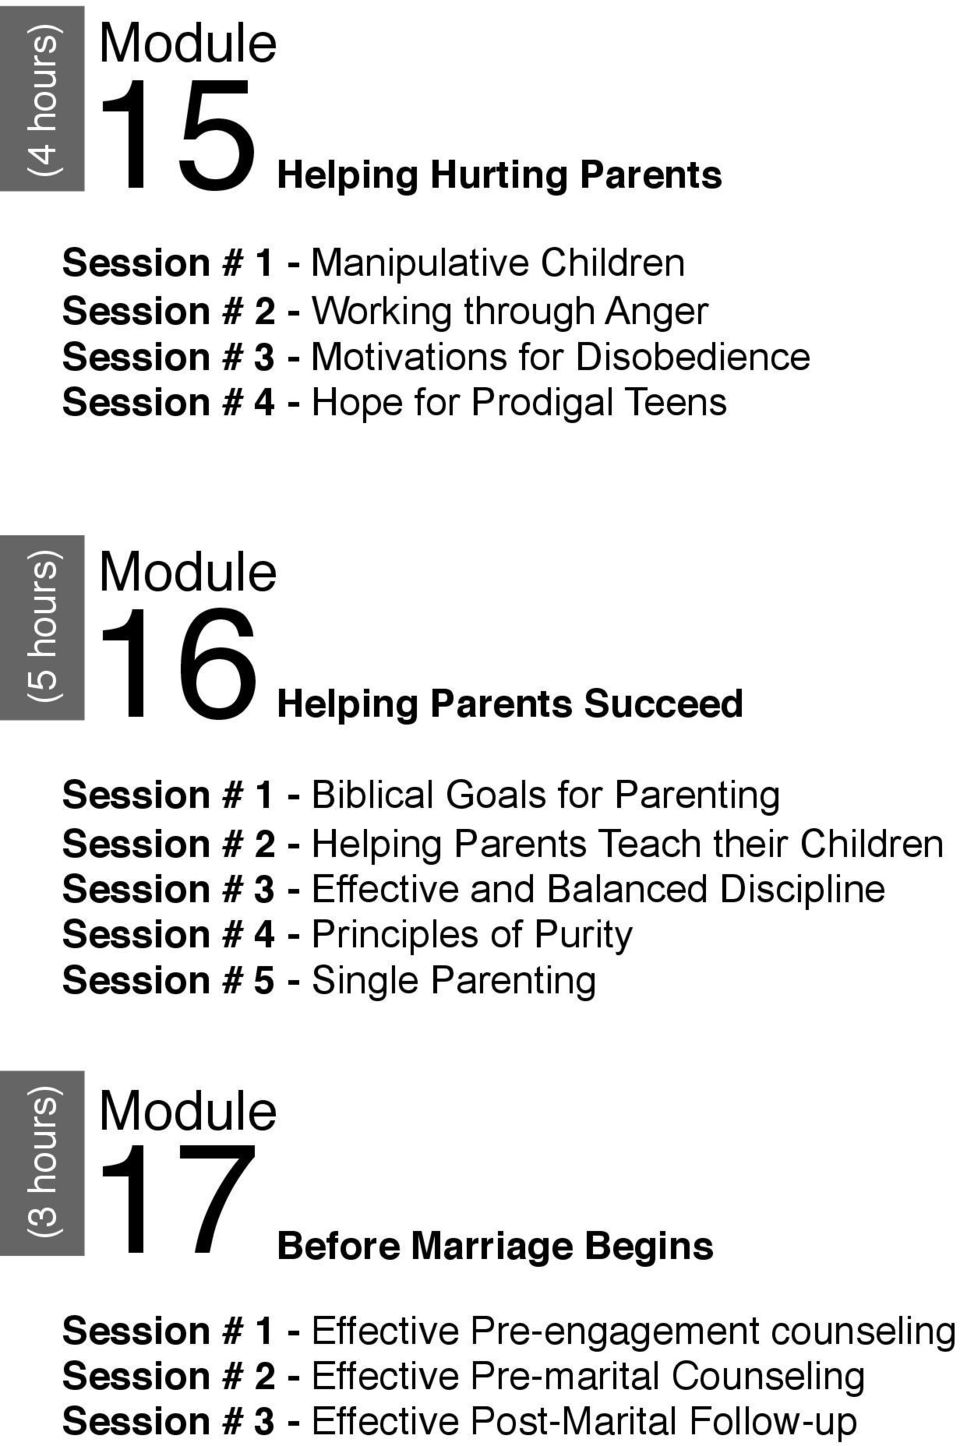 their Children Session # 3 - Effective and Balanced Discipline Session # 4 - Principles of Purity Session # 5 - Single Parenting (3 hours) 17 Before